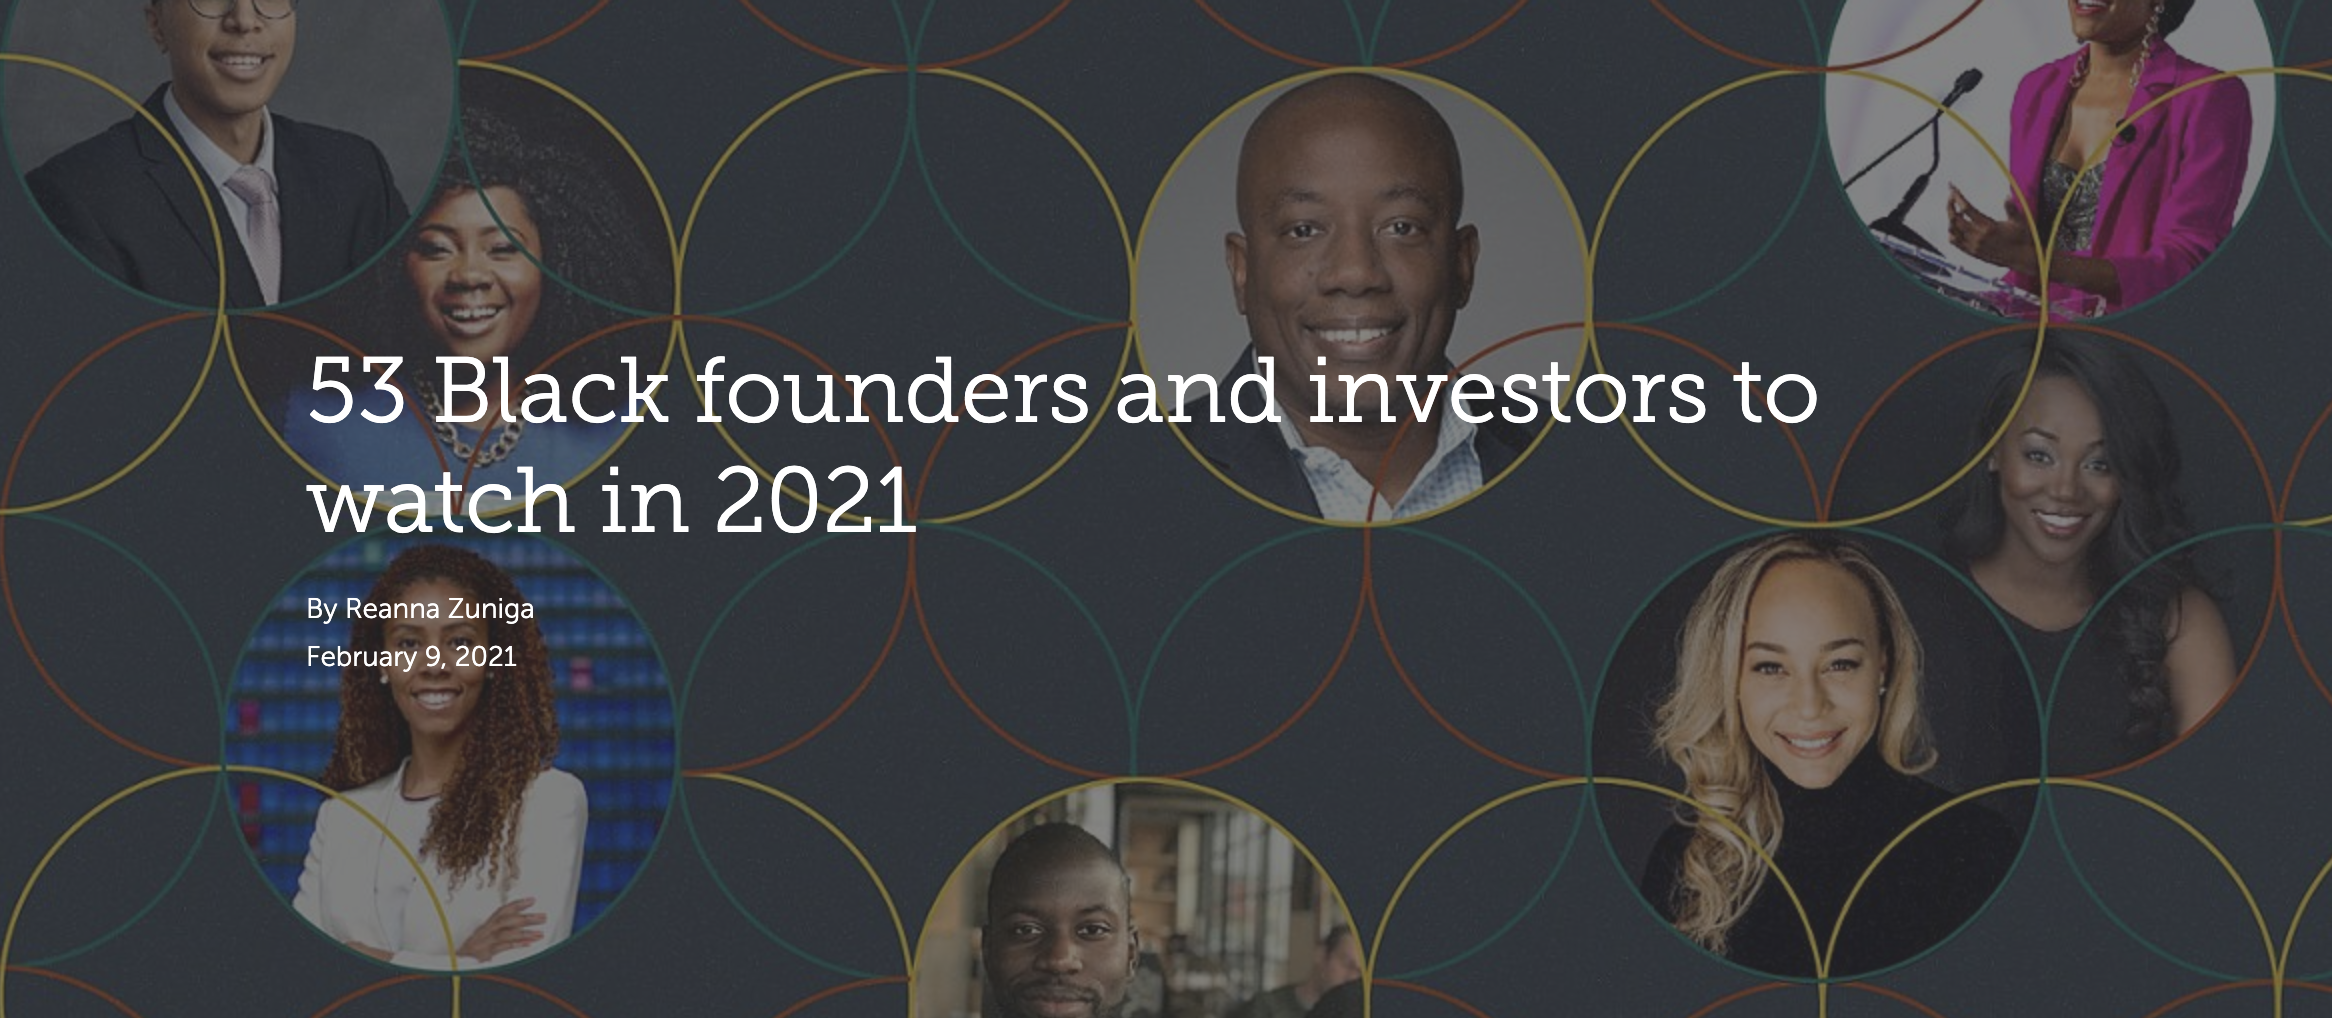 53 Black founders and investors to watch in 2021